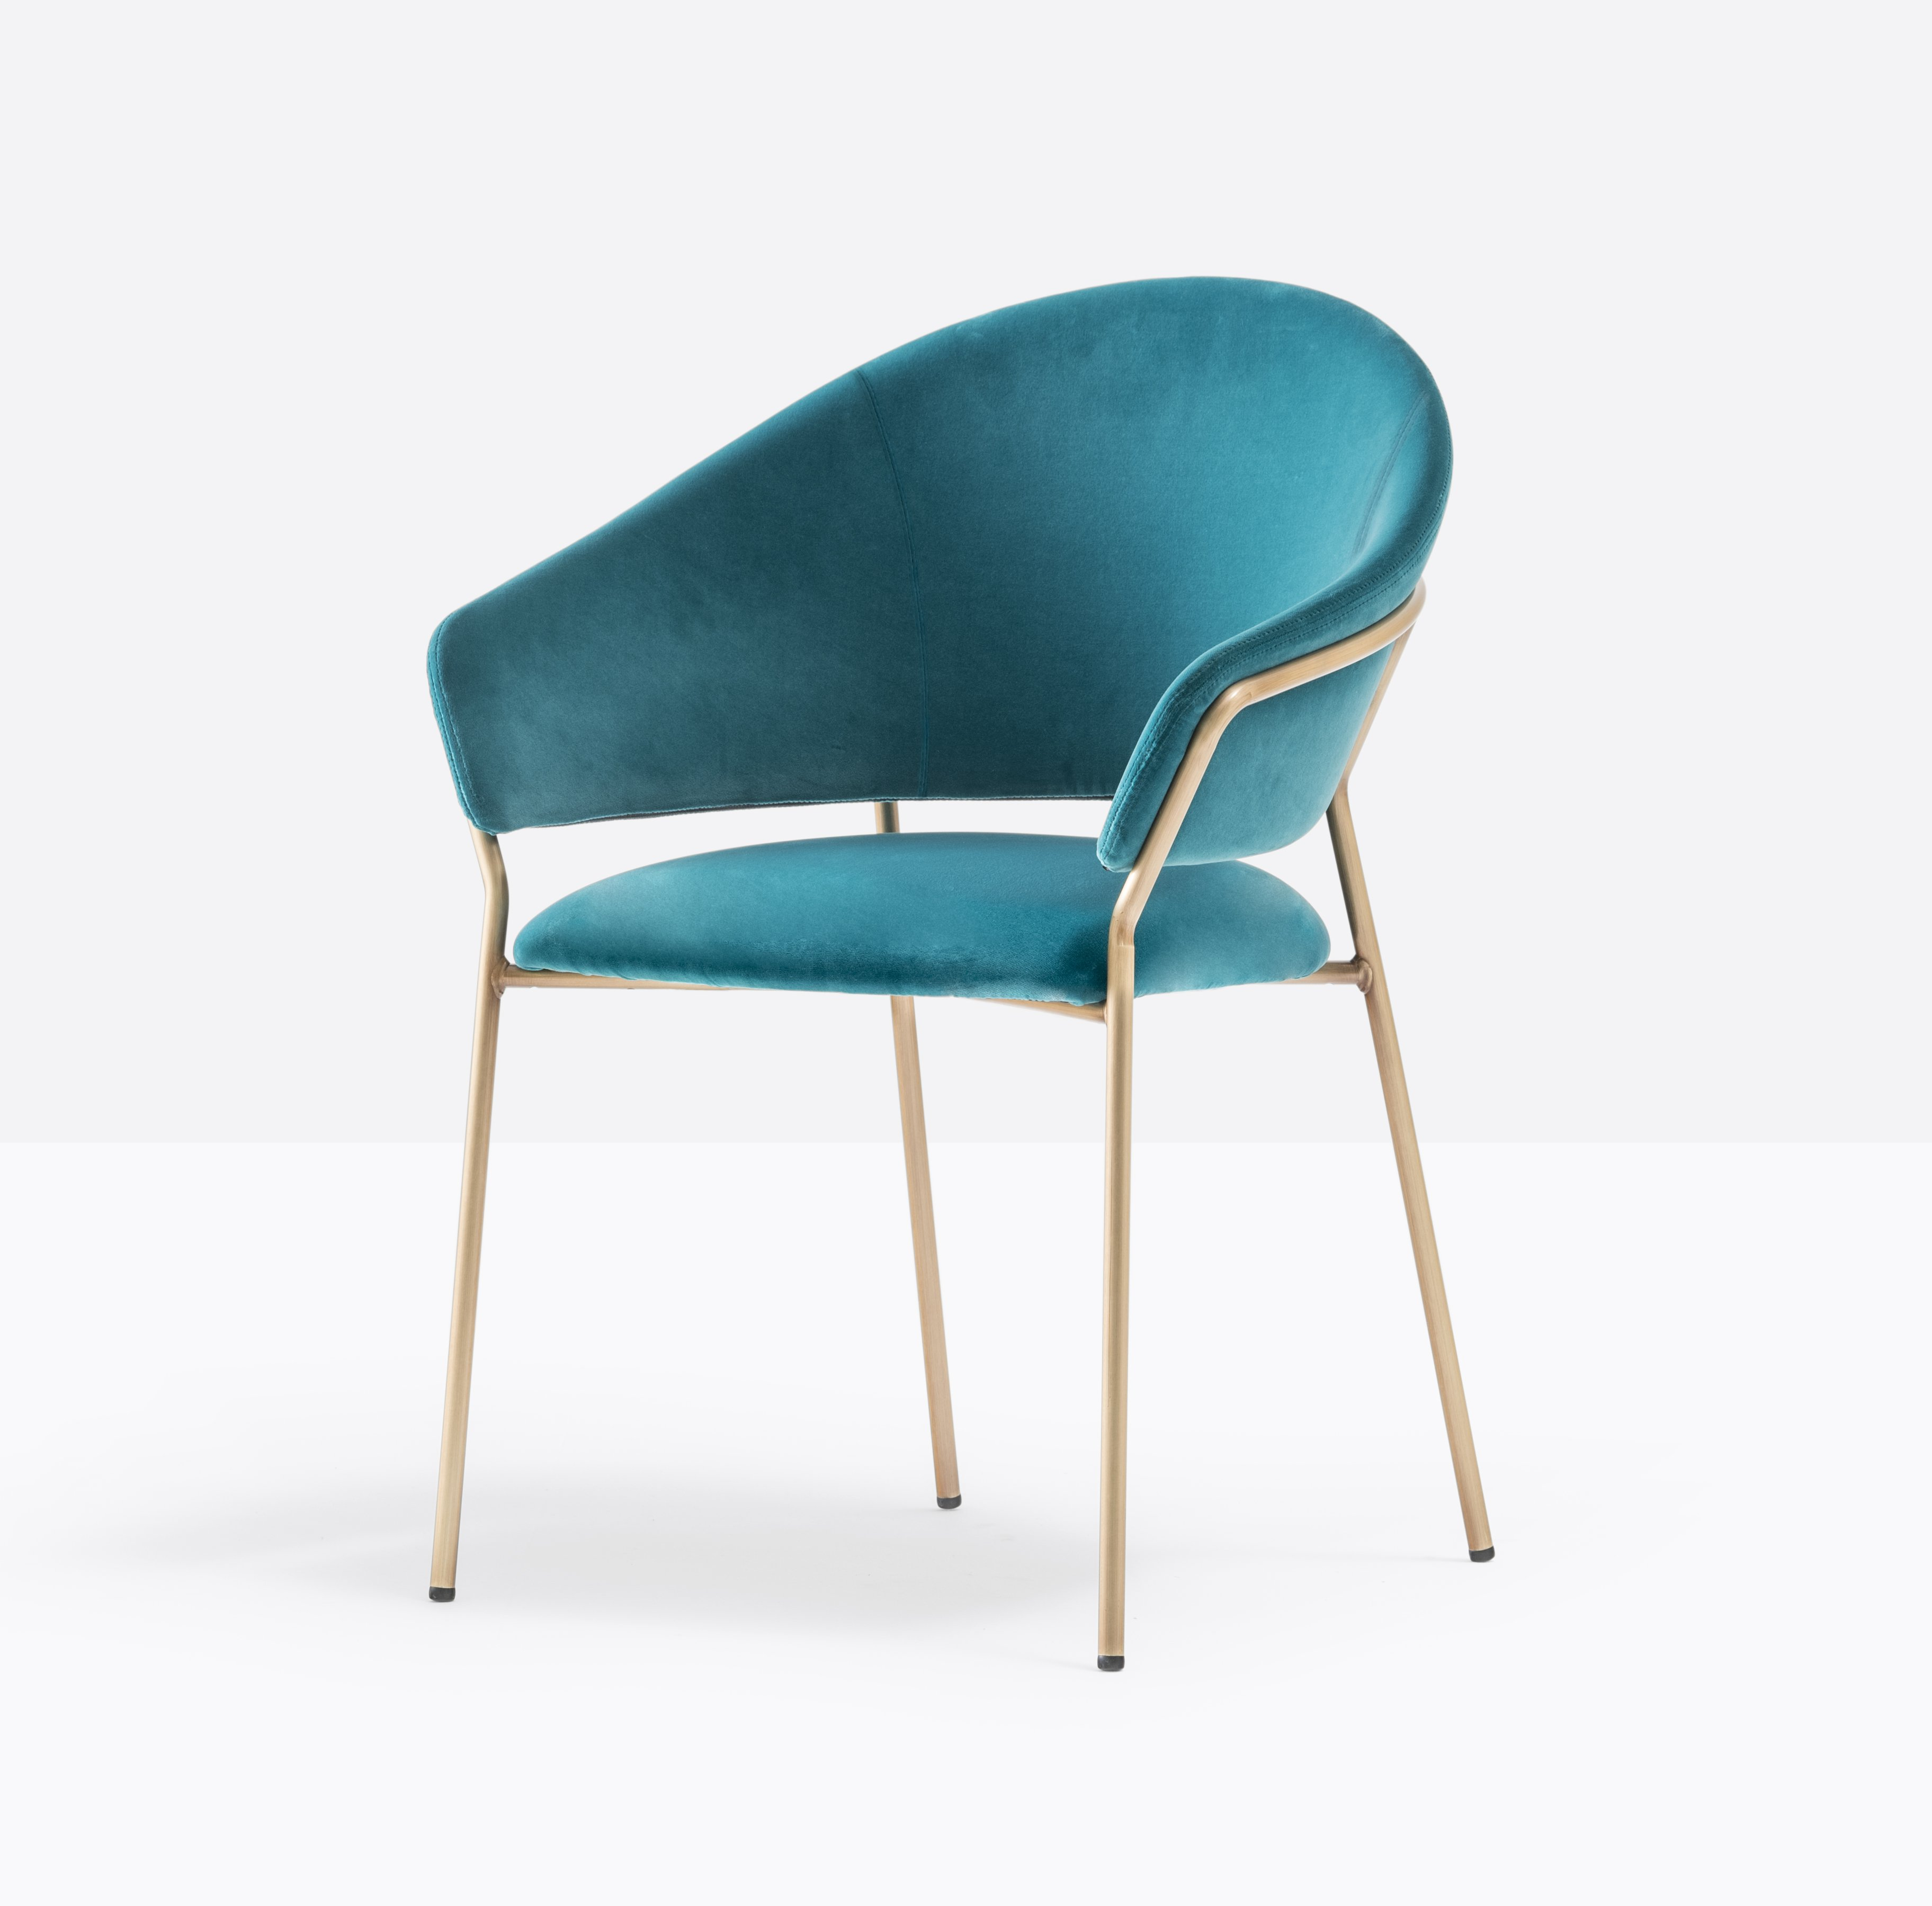 Jazz chair from Pedrali, designed by Pedrali R&D